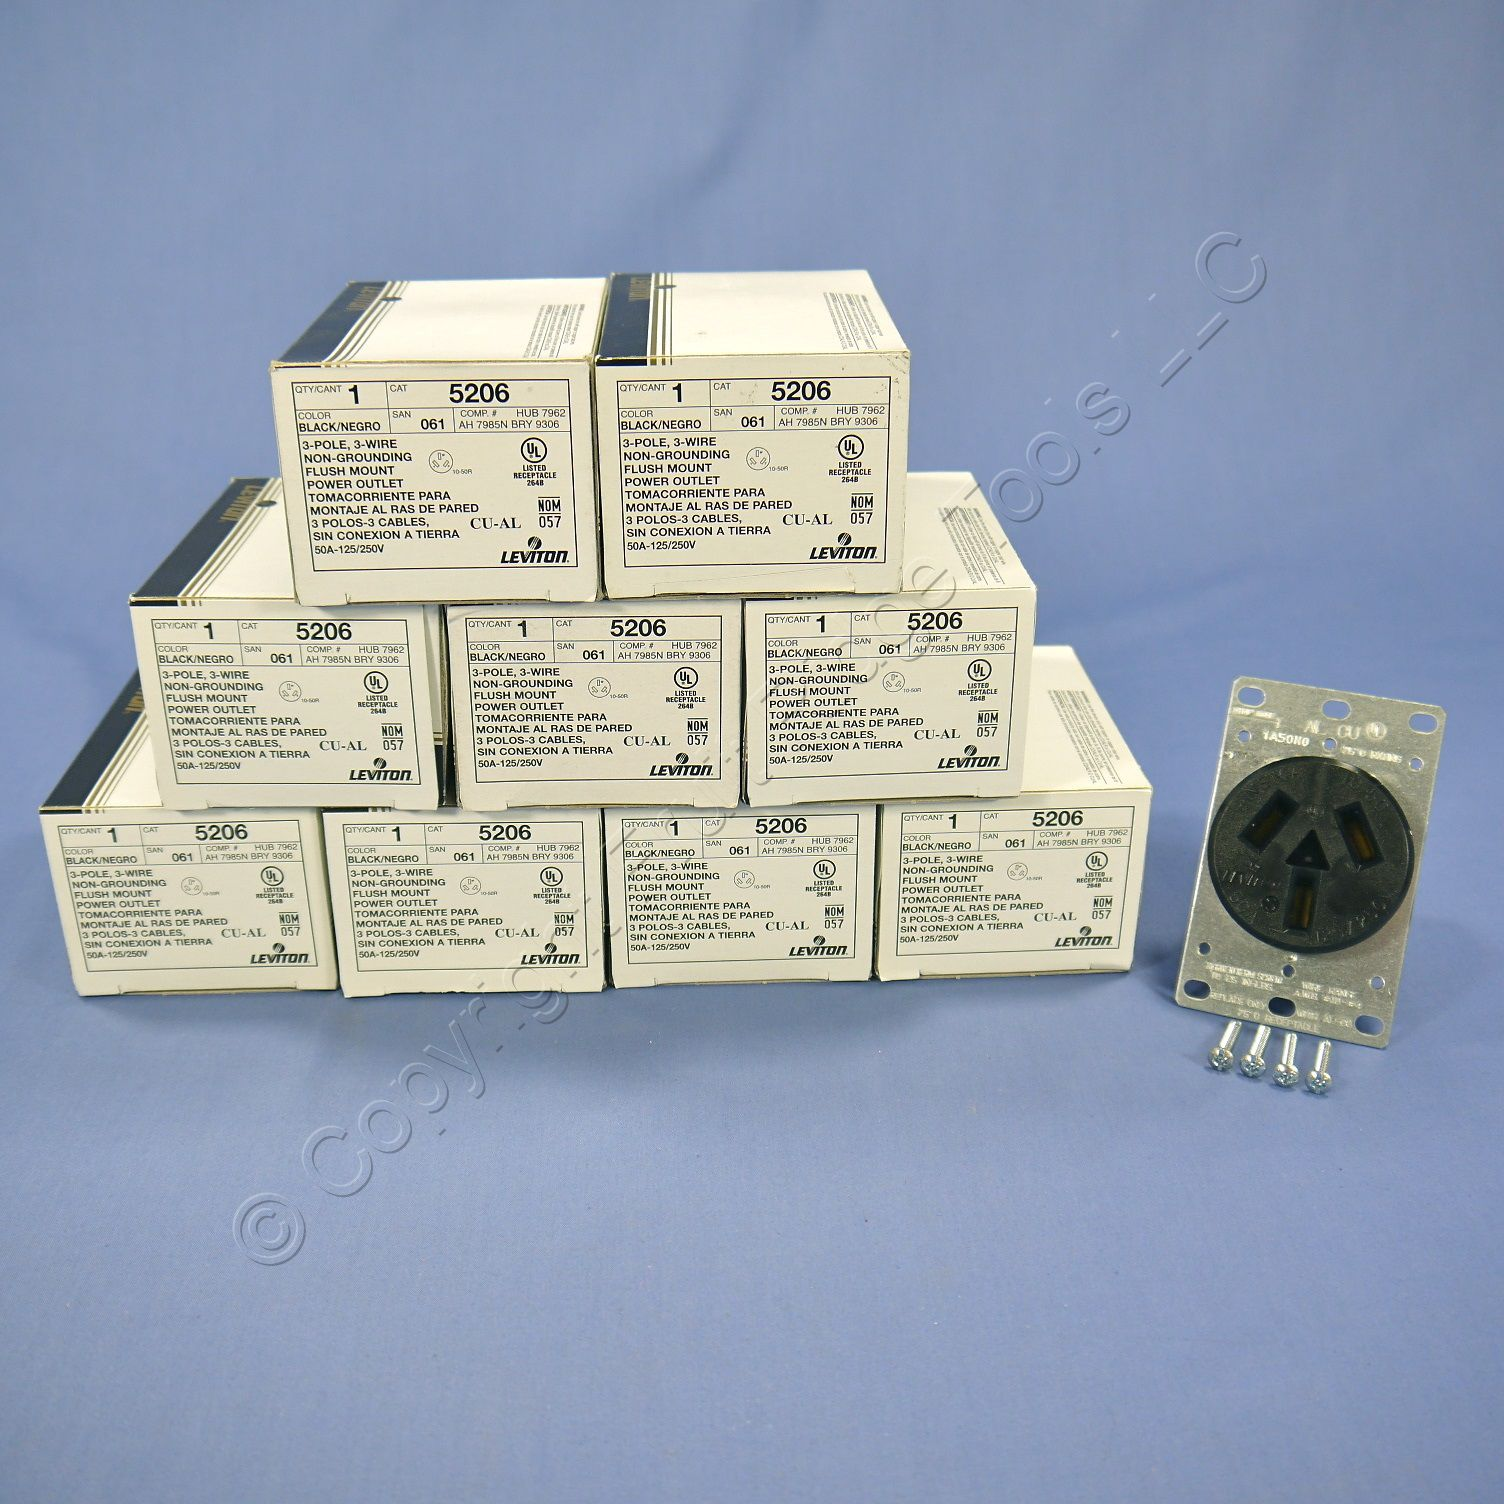 10 leviton dryer range power outlet receptacles nema 10 50r 50a 125 250v 5206 ebay